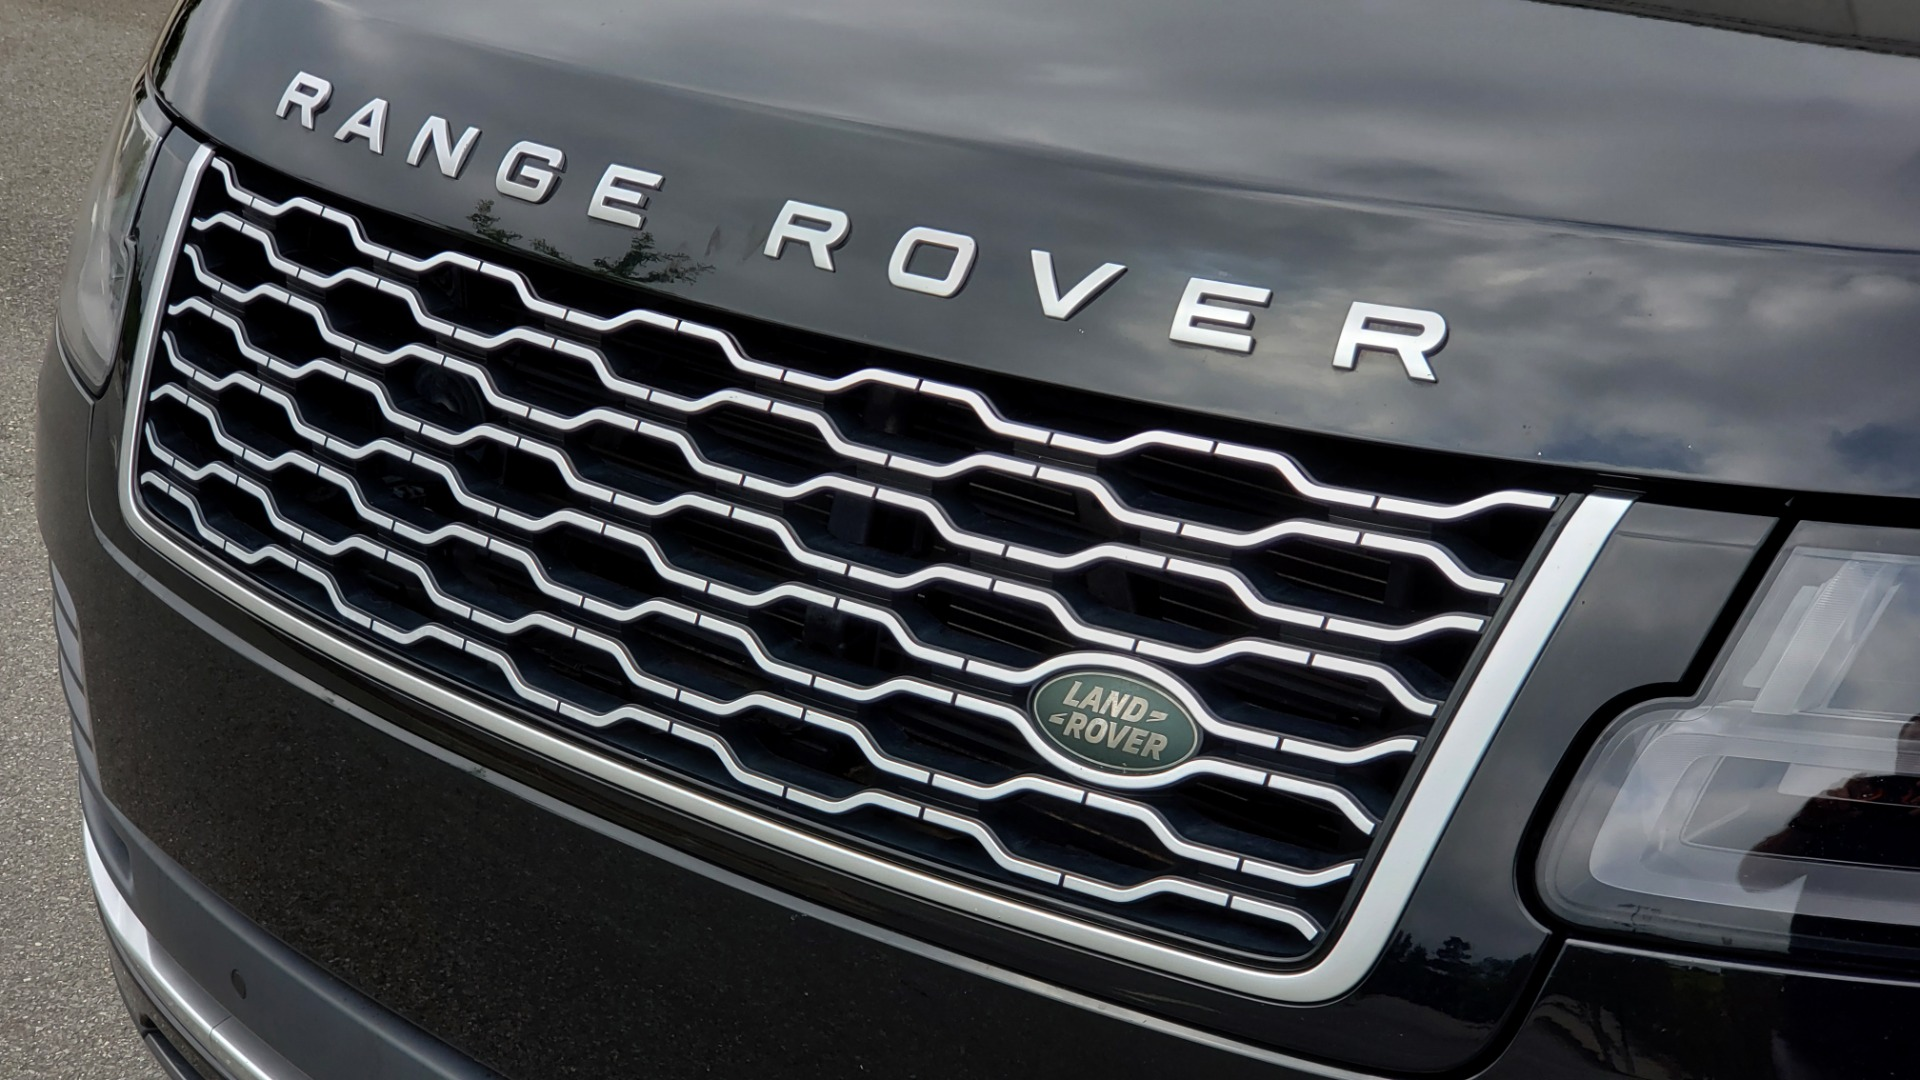 Used 2018 Land Rover RANGE ROVER SUPERCHARGED V8 / DRIVE PRO / NAV / PANO-ROOF / REARVIEW for sale $84,995 at Formula Imports in Charlotte NC 28227 28